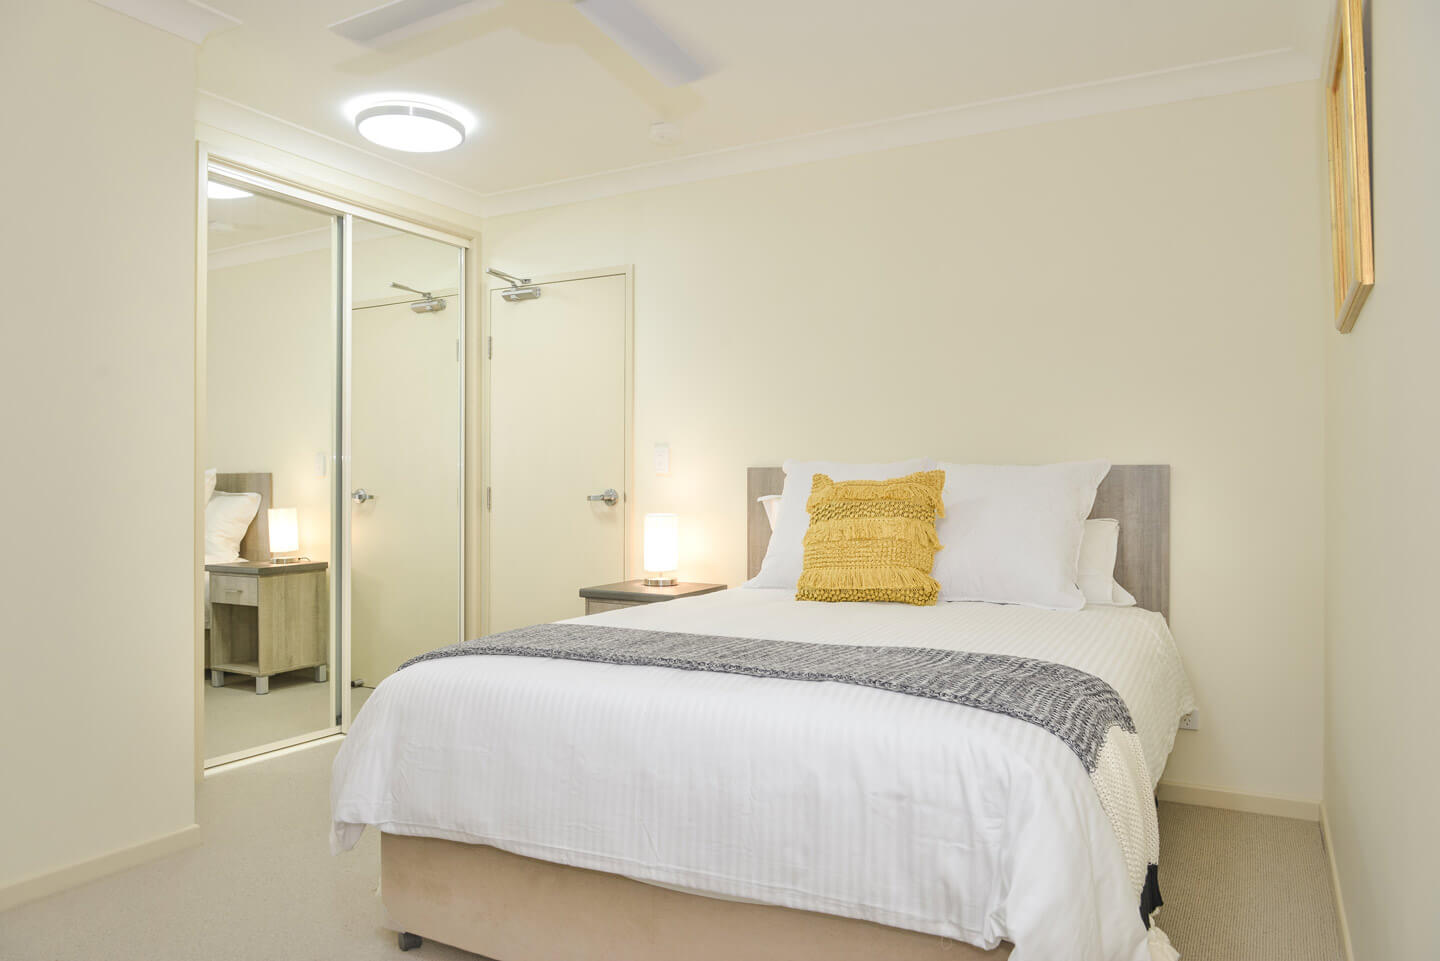 The Rosewood Studio - Compact room from $145/night